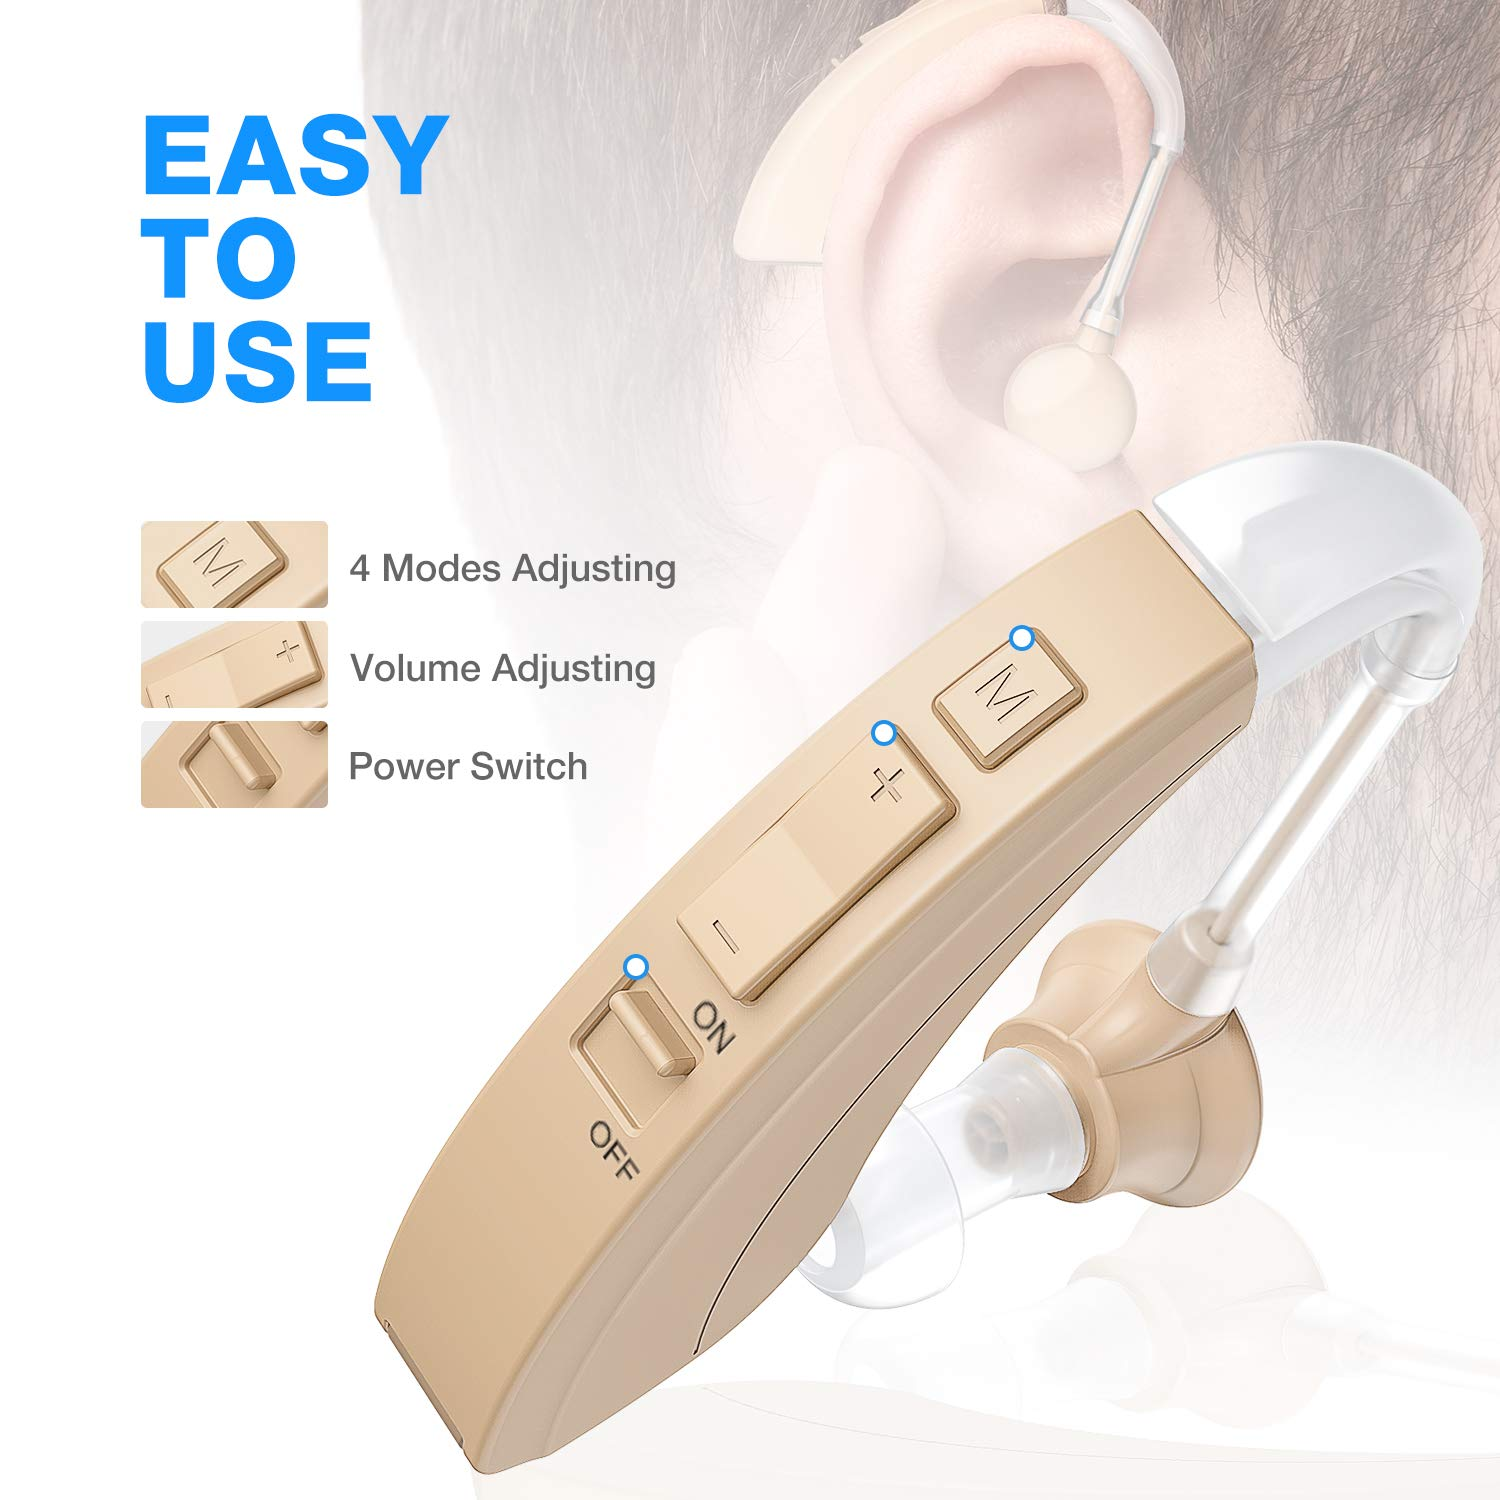 Hearing Amplifier FDA Approved Digital Personal Sound Enhancement Device with Noise Reduction for Adults and Seniors, 2 Pcs 500hr Batteries and Hearing Aid Brushes Included